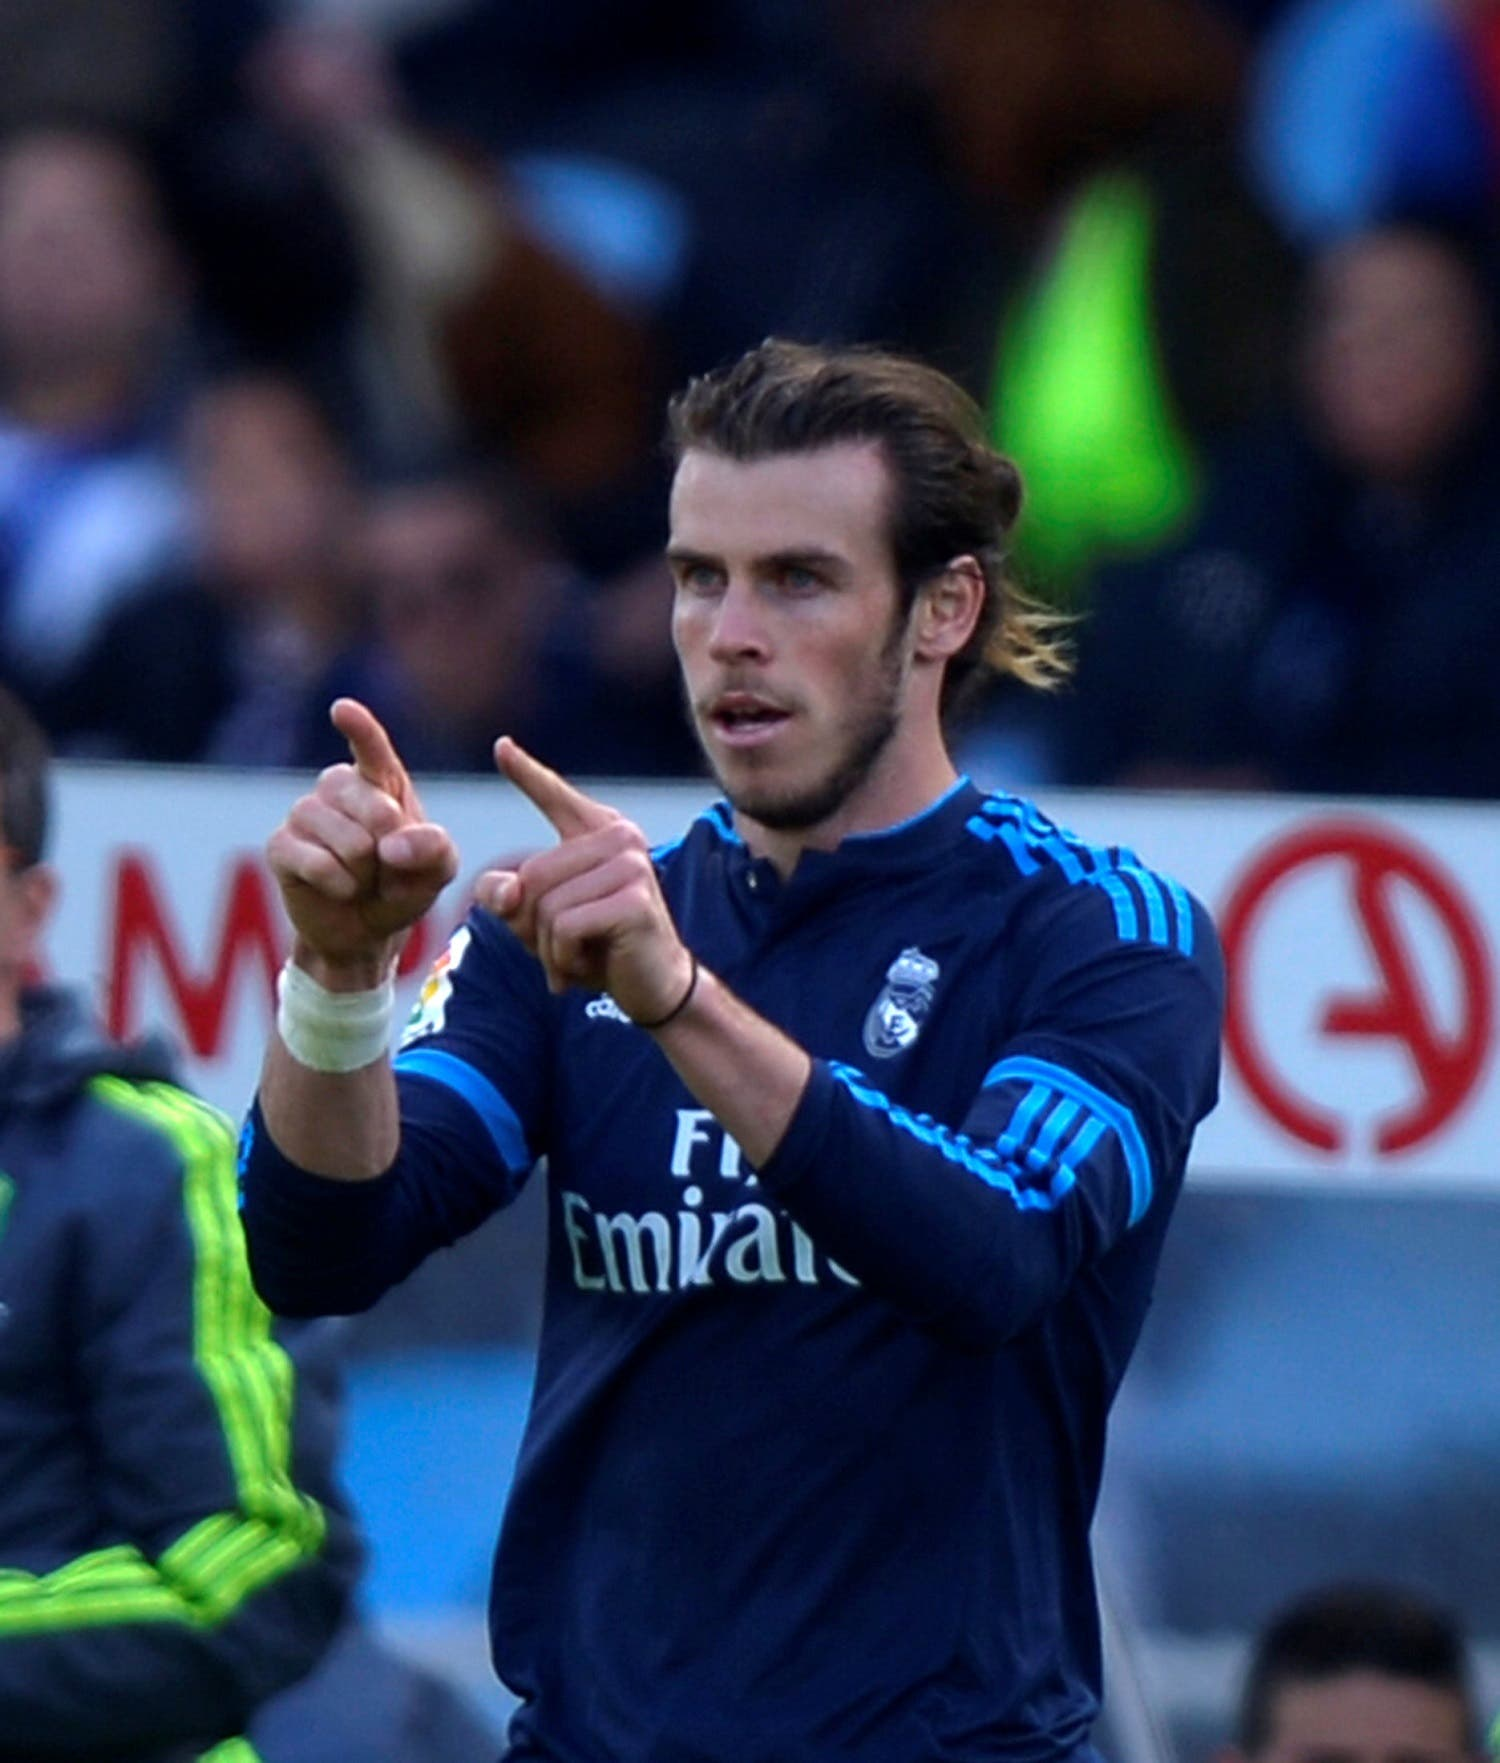 Real Madrid's Gareth Bale celebrates a goal during match against Real Sociedad REUTERS